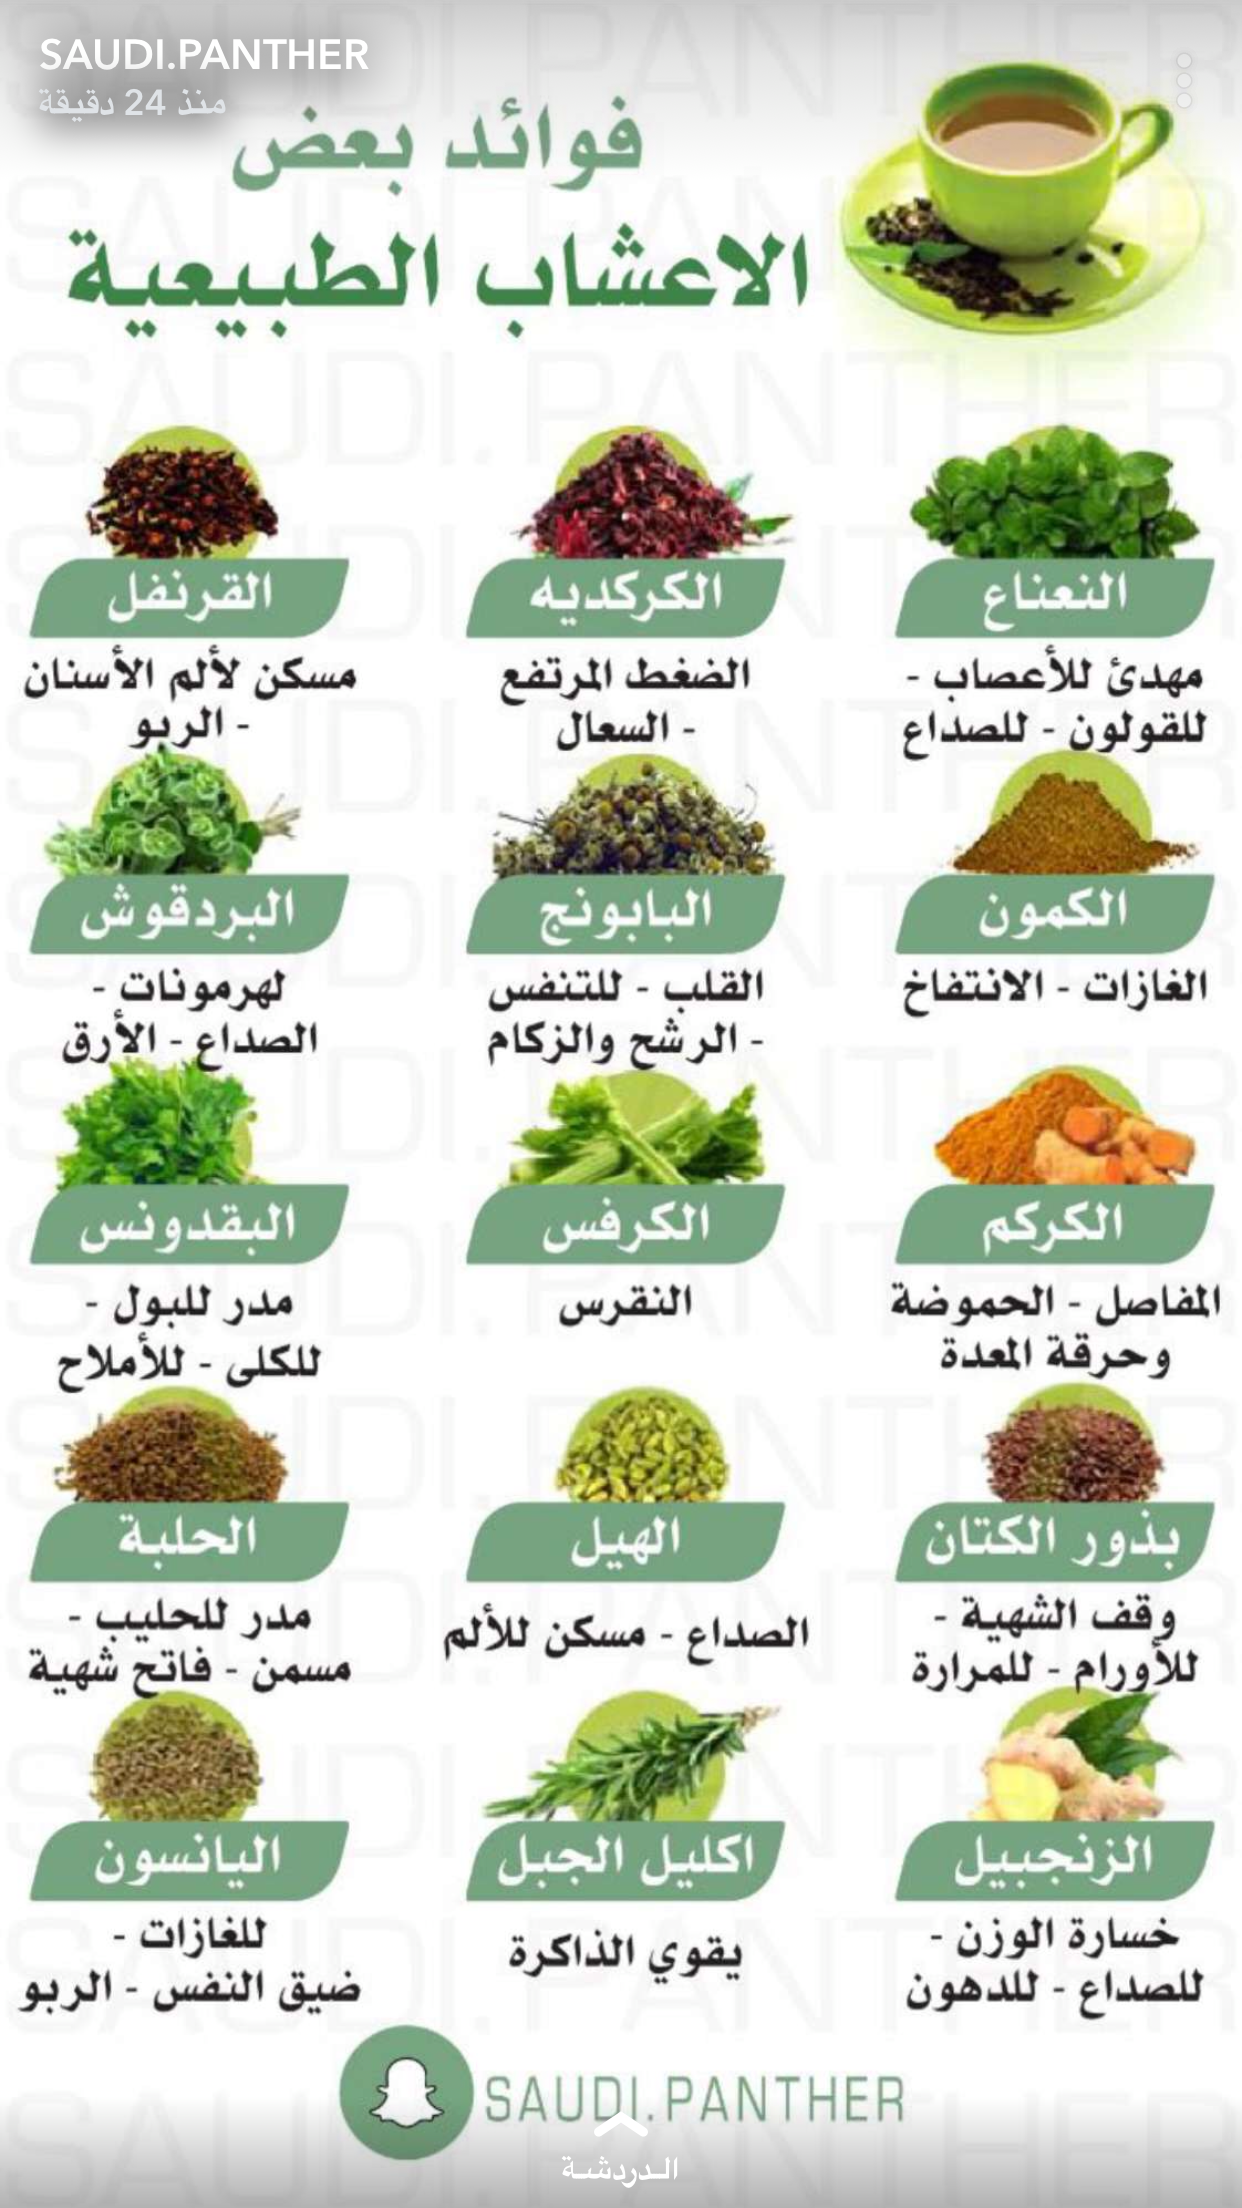 Pin By تهاني ال مشاري On Cook Health Facts Food Health Fitness Food Health Facts Fitness